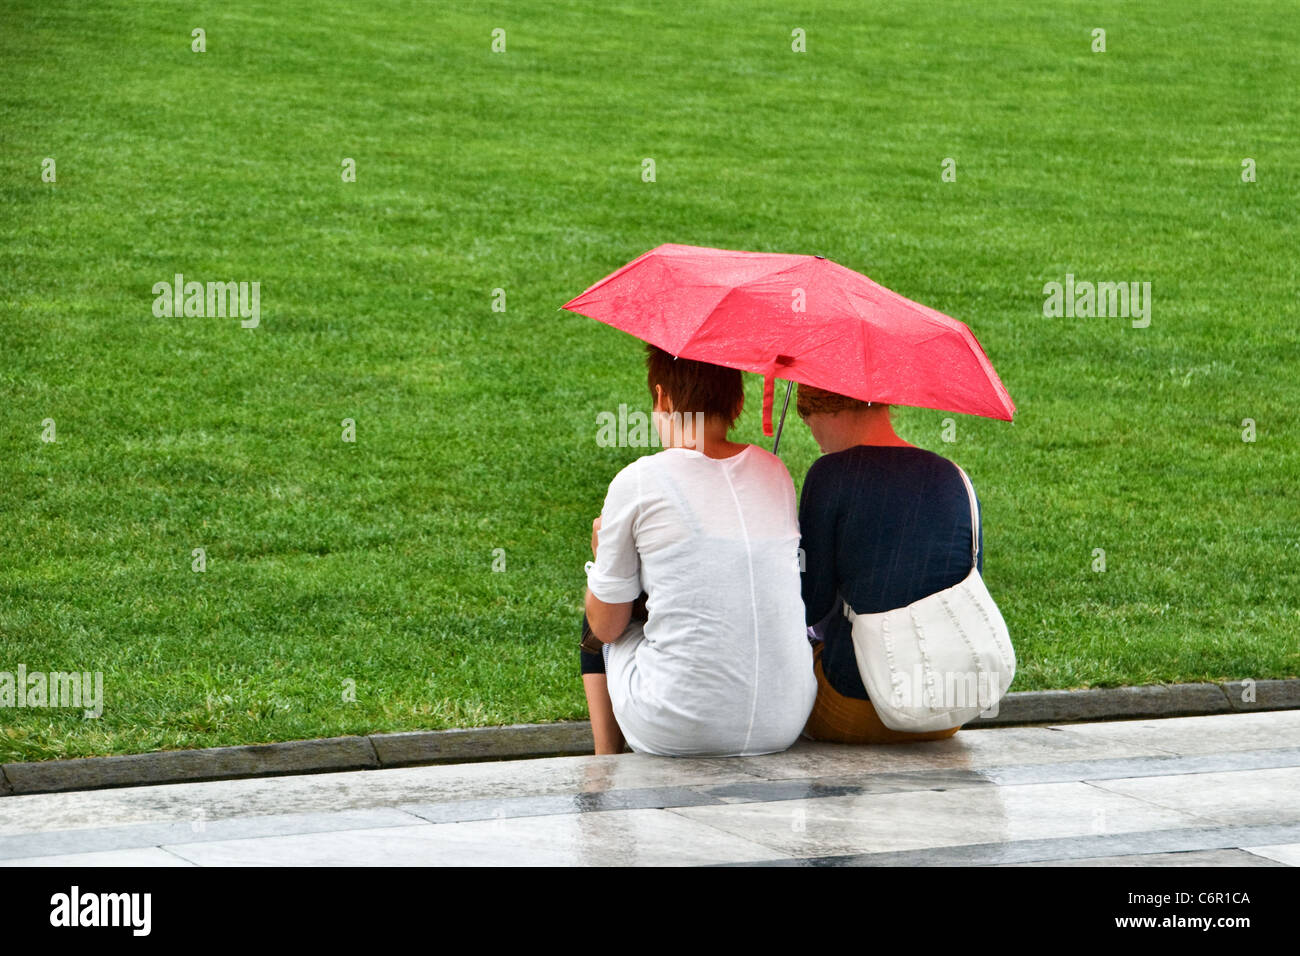 Two women sheltering under a red umbrella from the rain. View from the rear behind. Close up - Stock Image